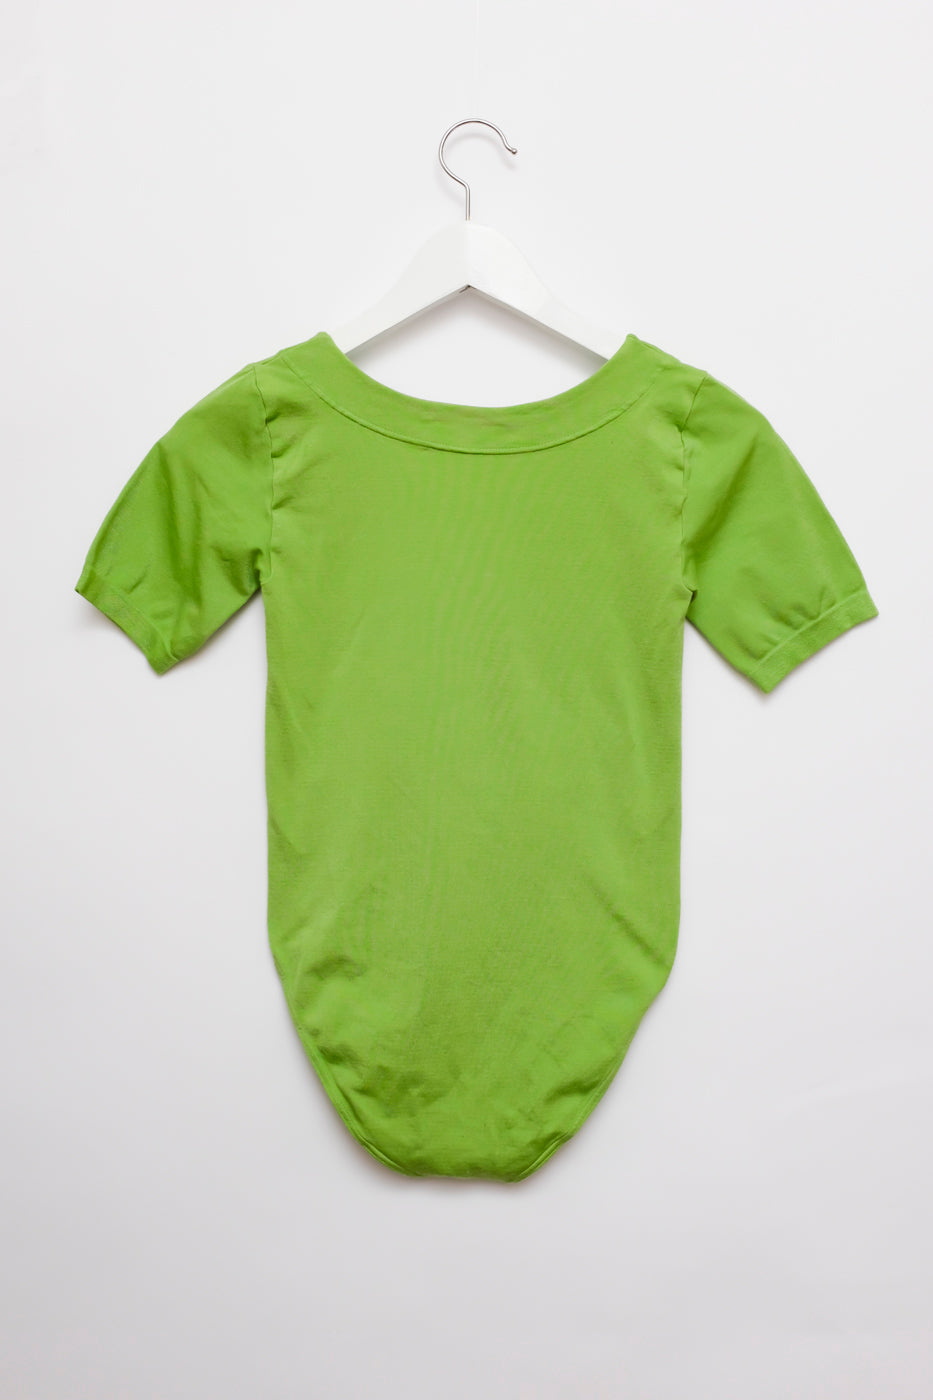 0003_JOOP VINTAGE GREEN BODY